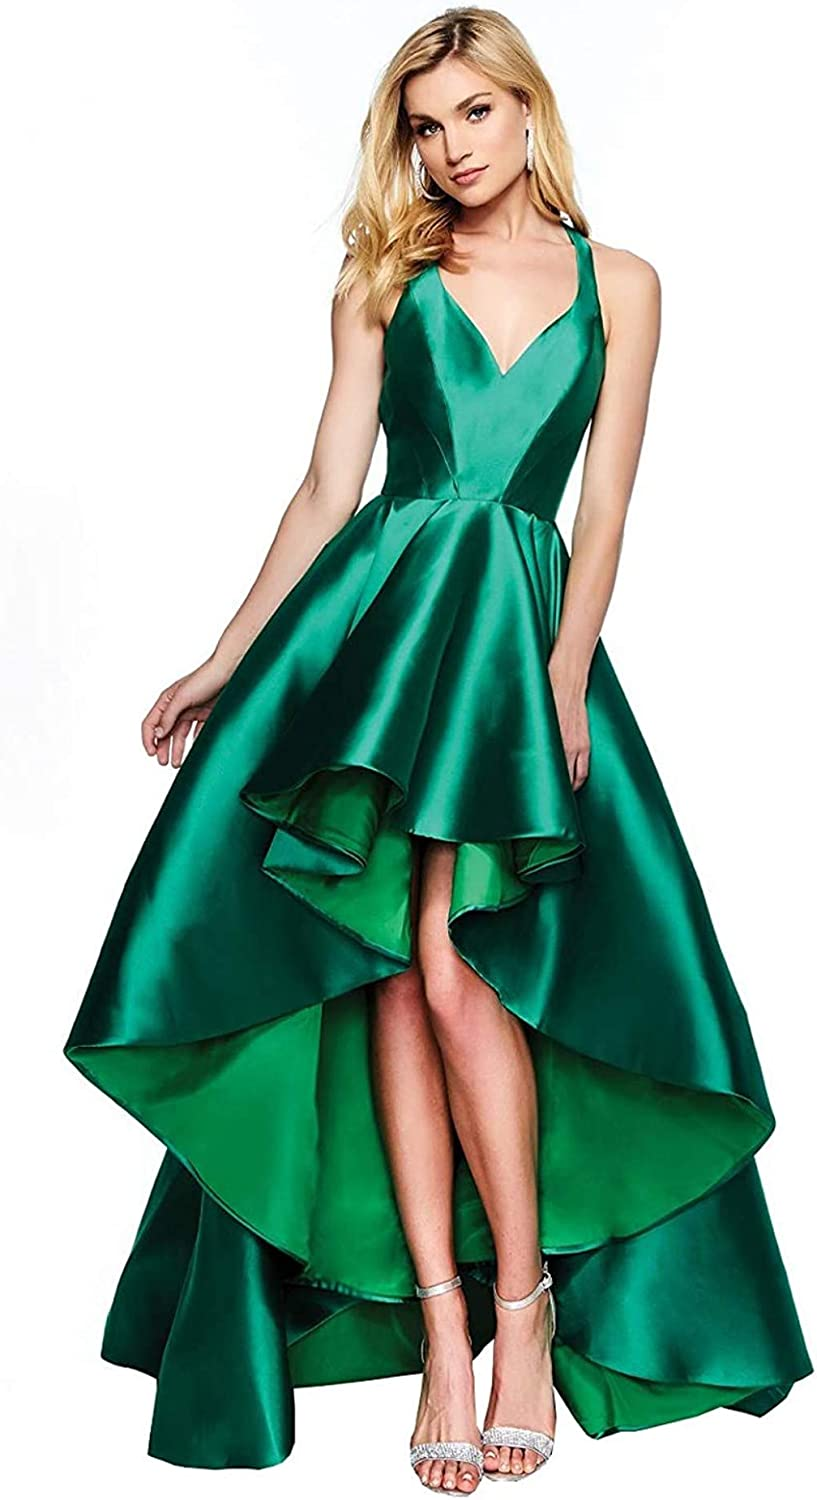 Houganhe Satin Free Shipping Cheap Bargain Gift Backless High Low Selling rankings Prom Nec V Dresses with Pockets